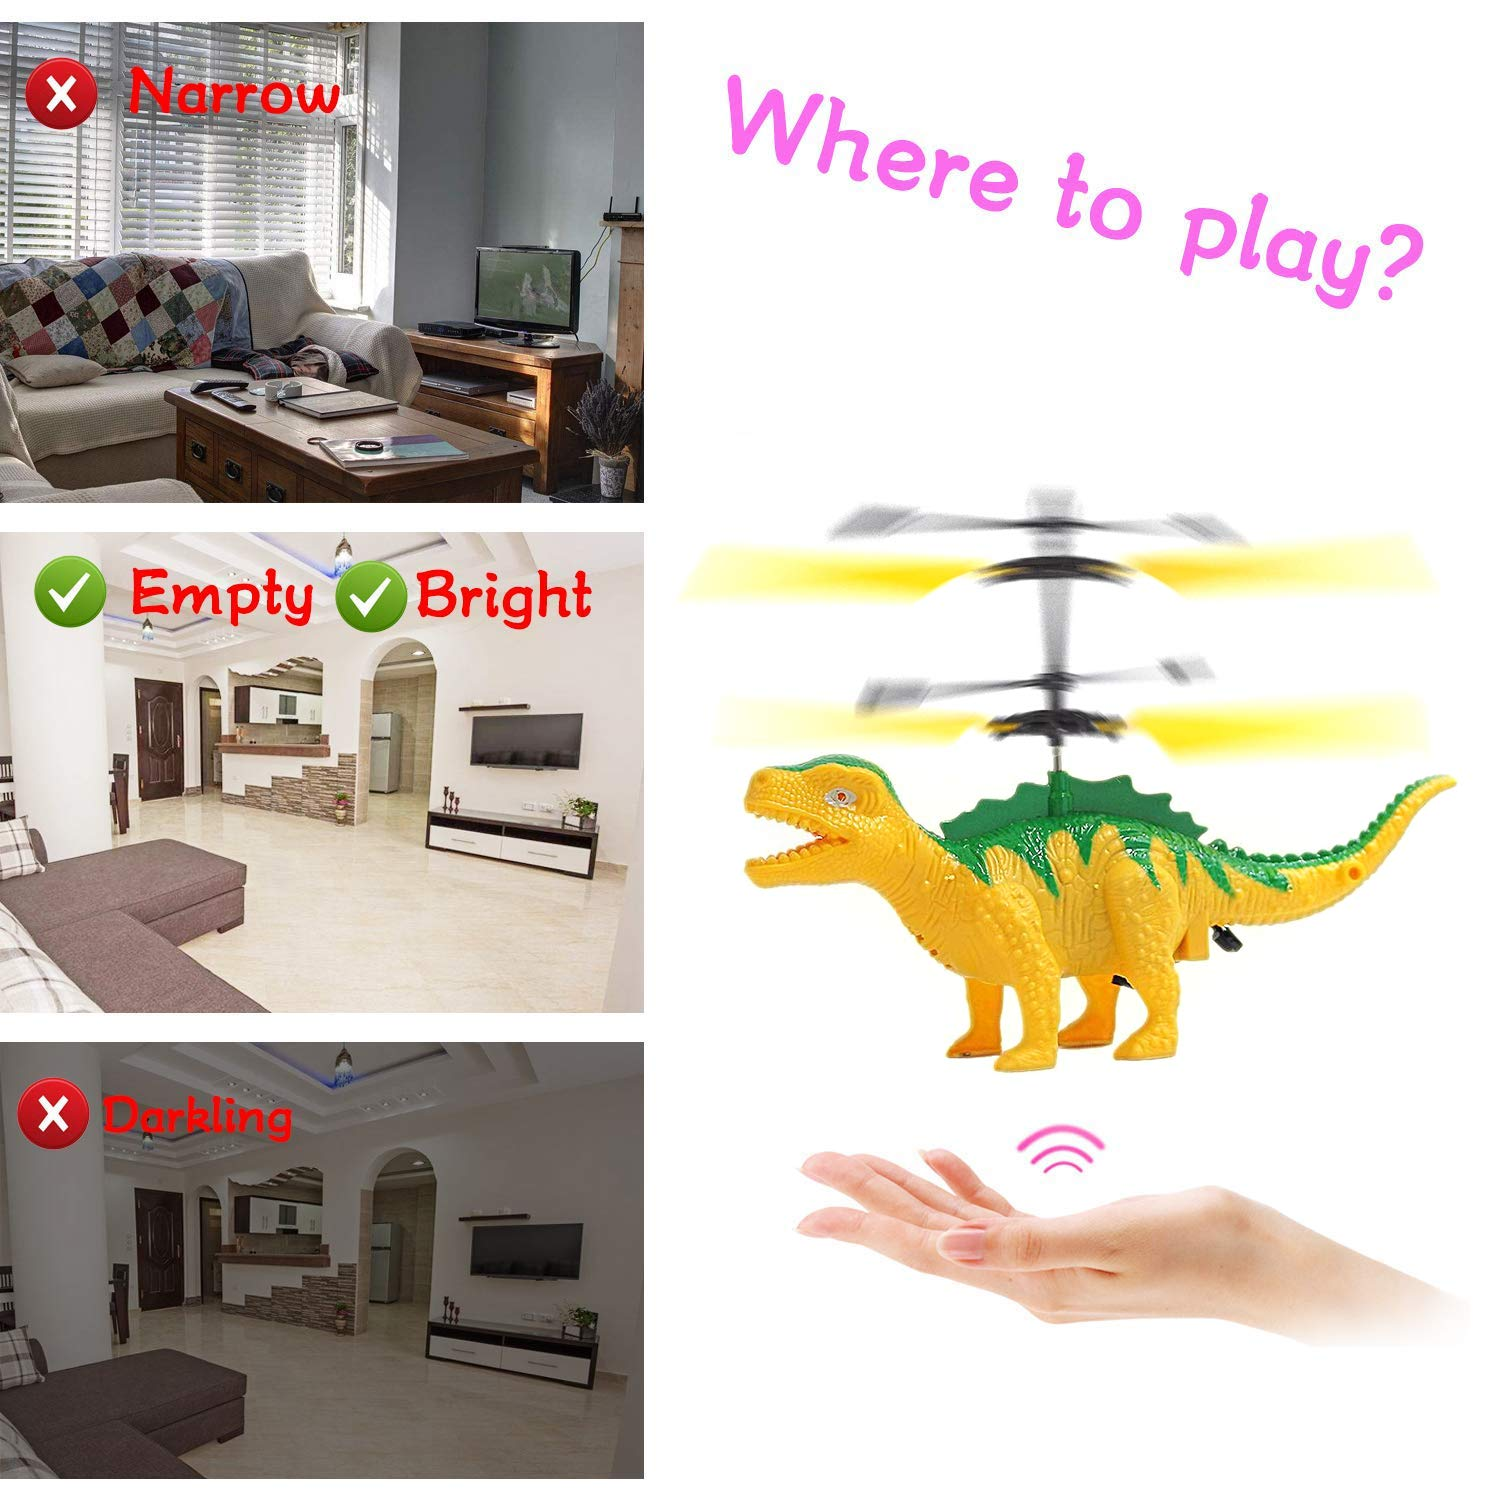 Anda RC Flying Helicopter Dinosaurs Dragon Toys for 6 Year Old Boys Girls Kids, Mini Remote and Hand Controlled Dinosaurs Helicopter for Birthday Holiday Xmas by Anda (Image #3)